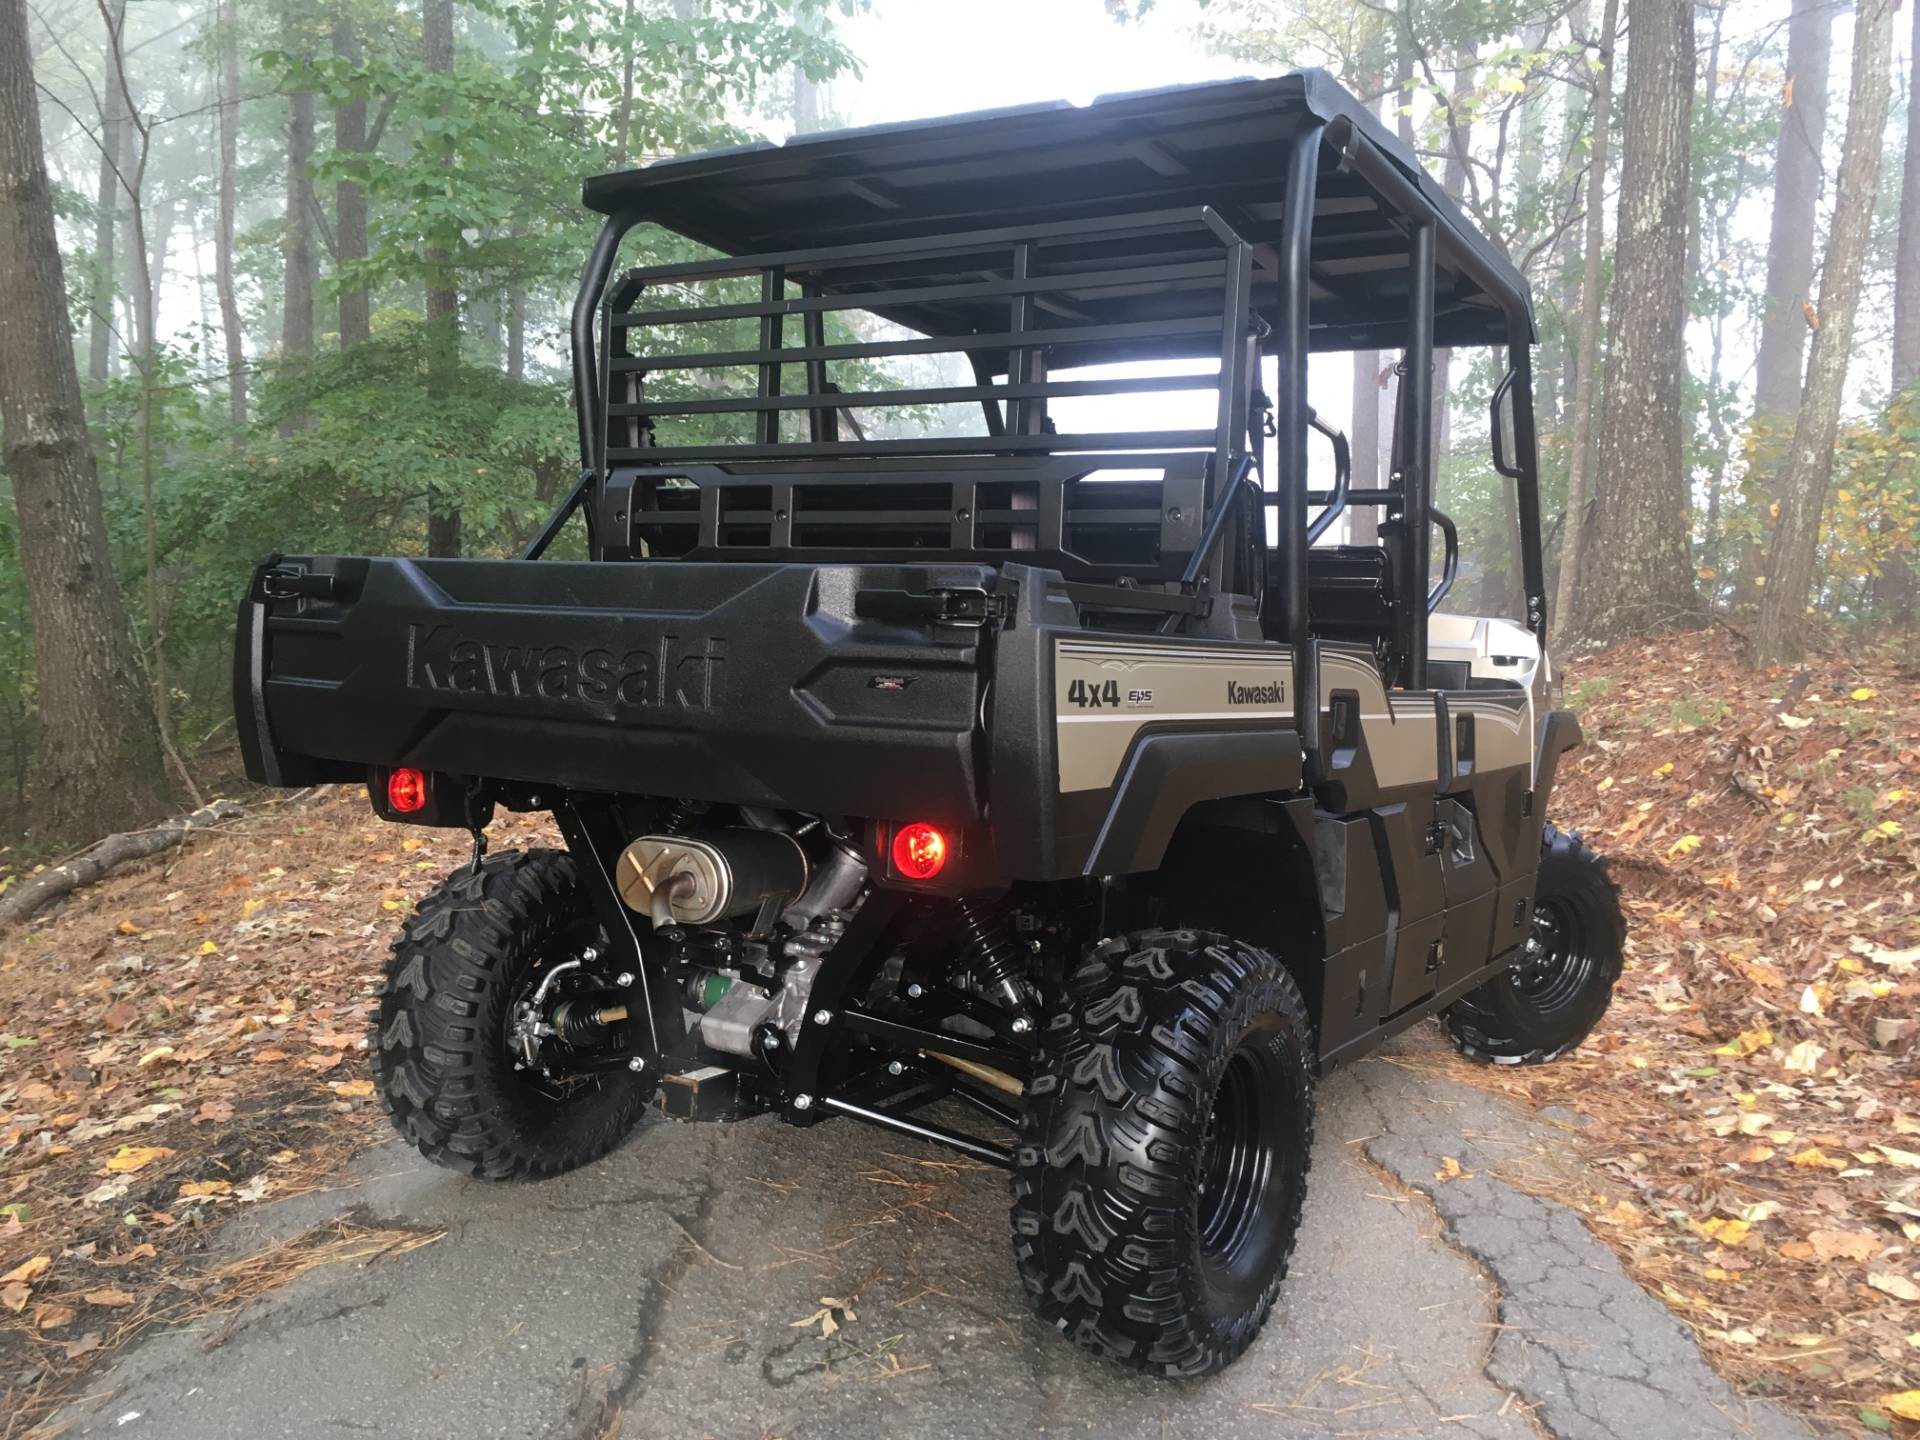 2017 Kawasaki MULE PRO FXT RANCH EDITION 4